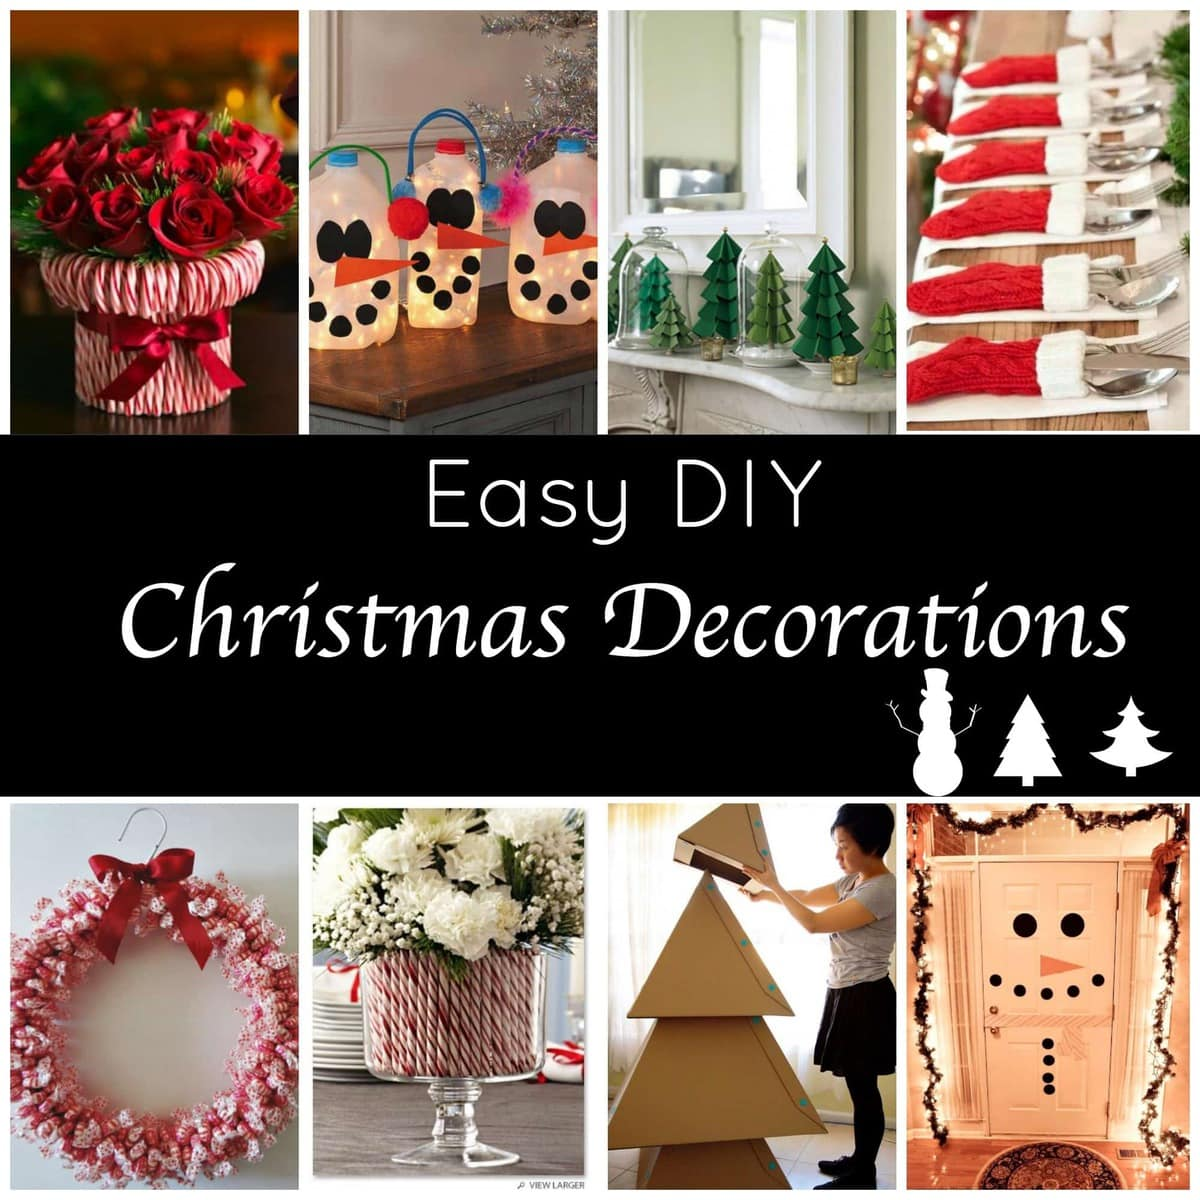 Cute and easy diy holiday decorations for a festive home for Seasonal decorations home